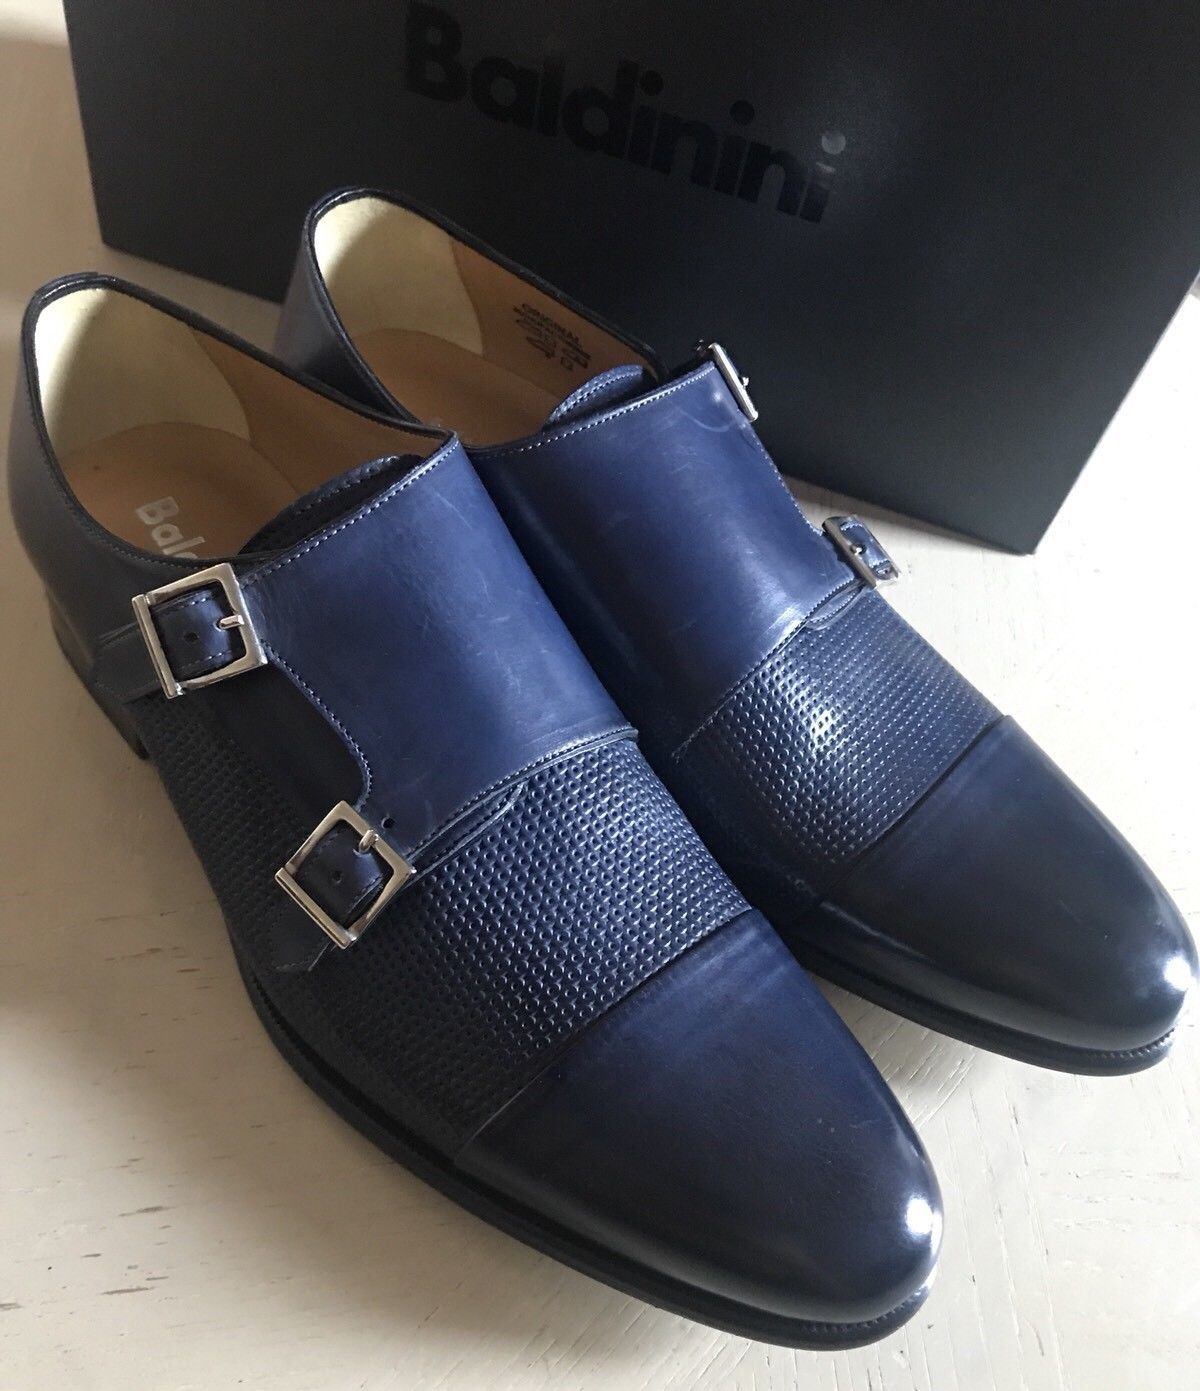 New $640 Baldinini Men's Leather Shoes Blue 10 US ( 43 Eu ) Italy - BAYSUPERSTORE